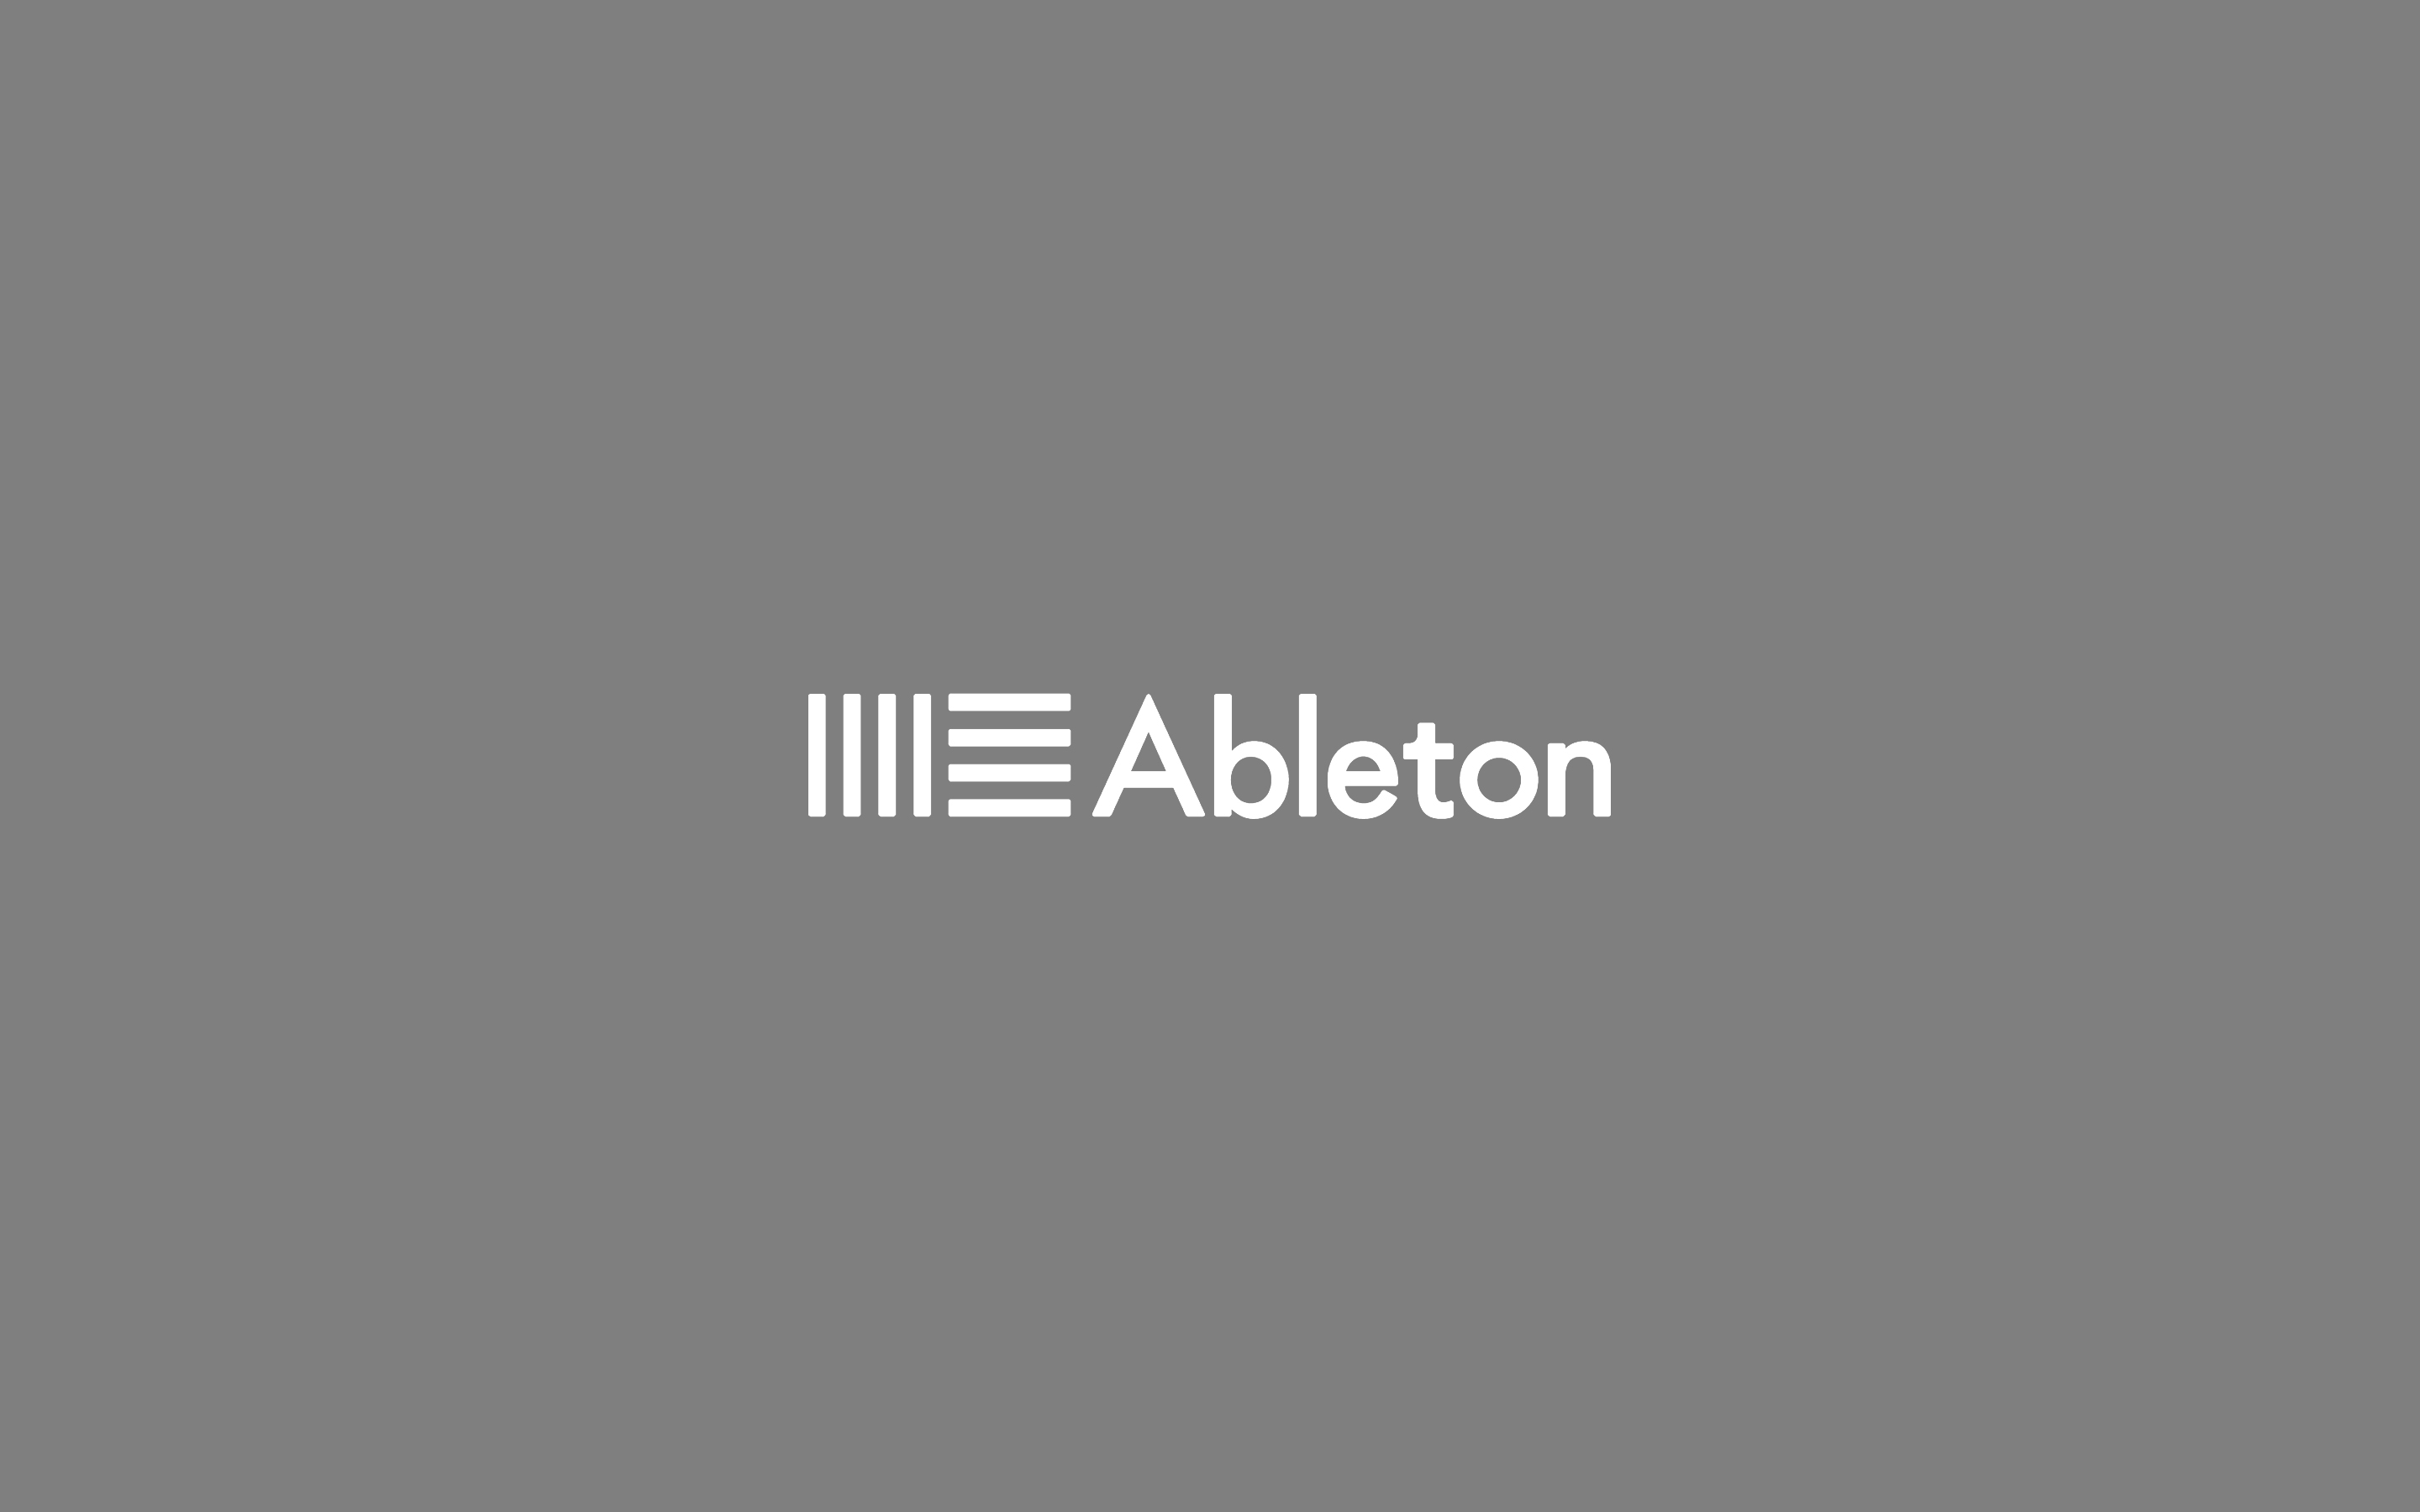 Ableton Wallpaper Ableton Backgrounds for PC   High 2880x1800